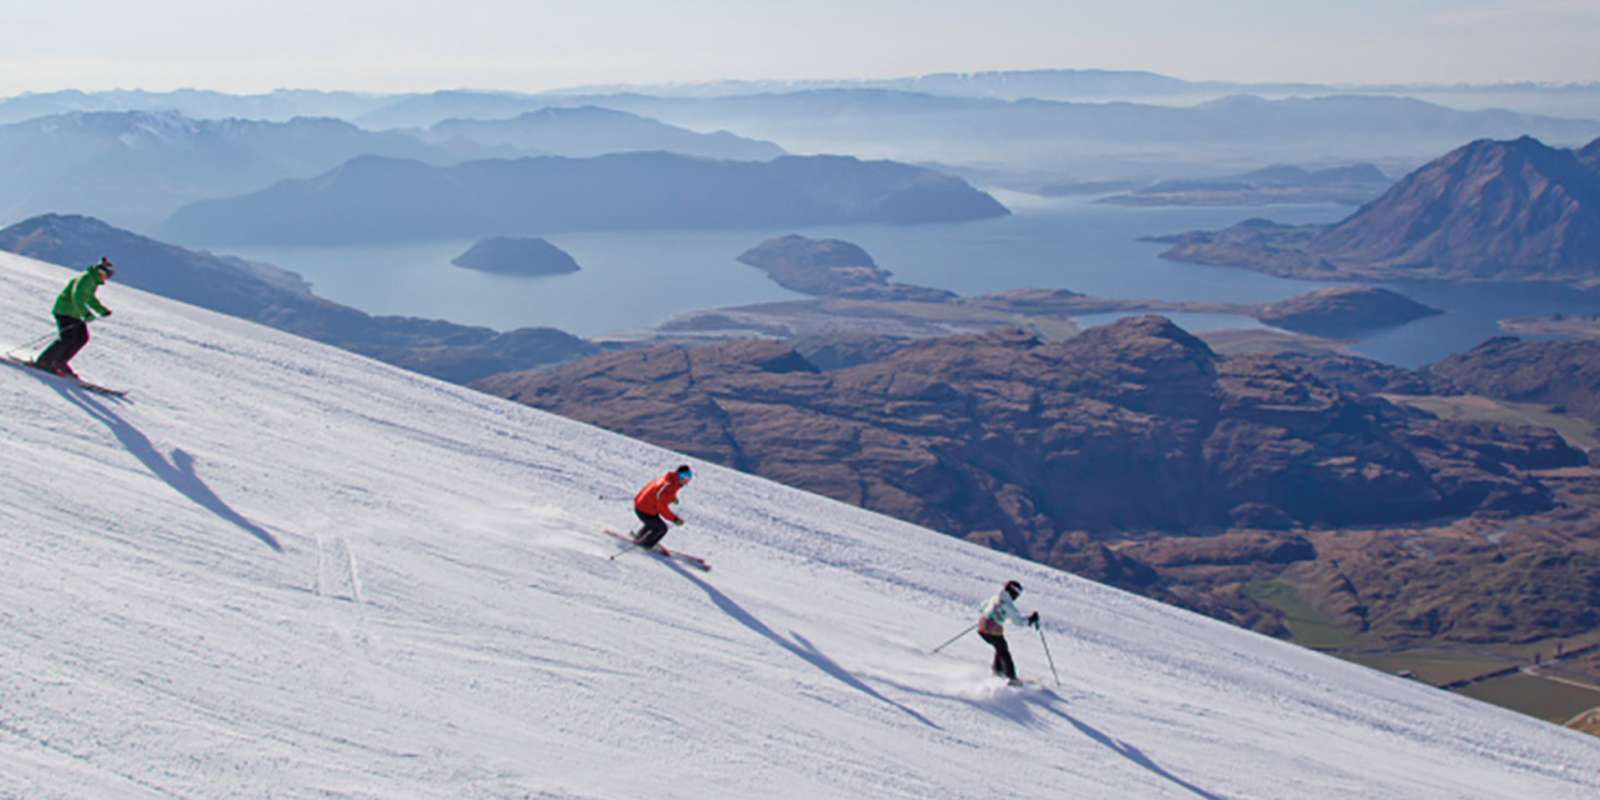 Treble Cone Ski Area